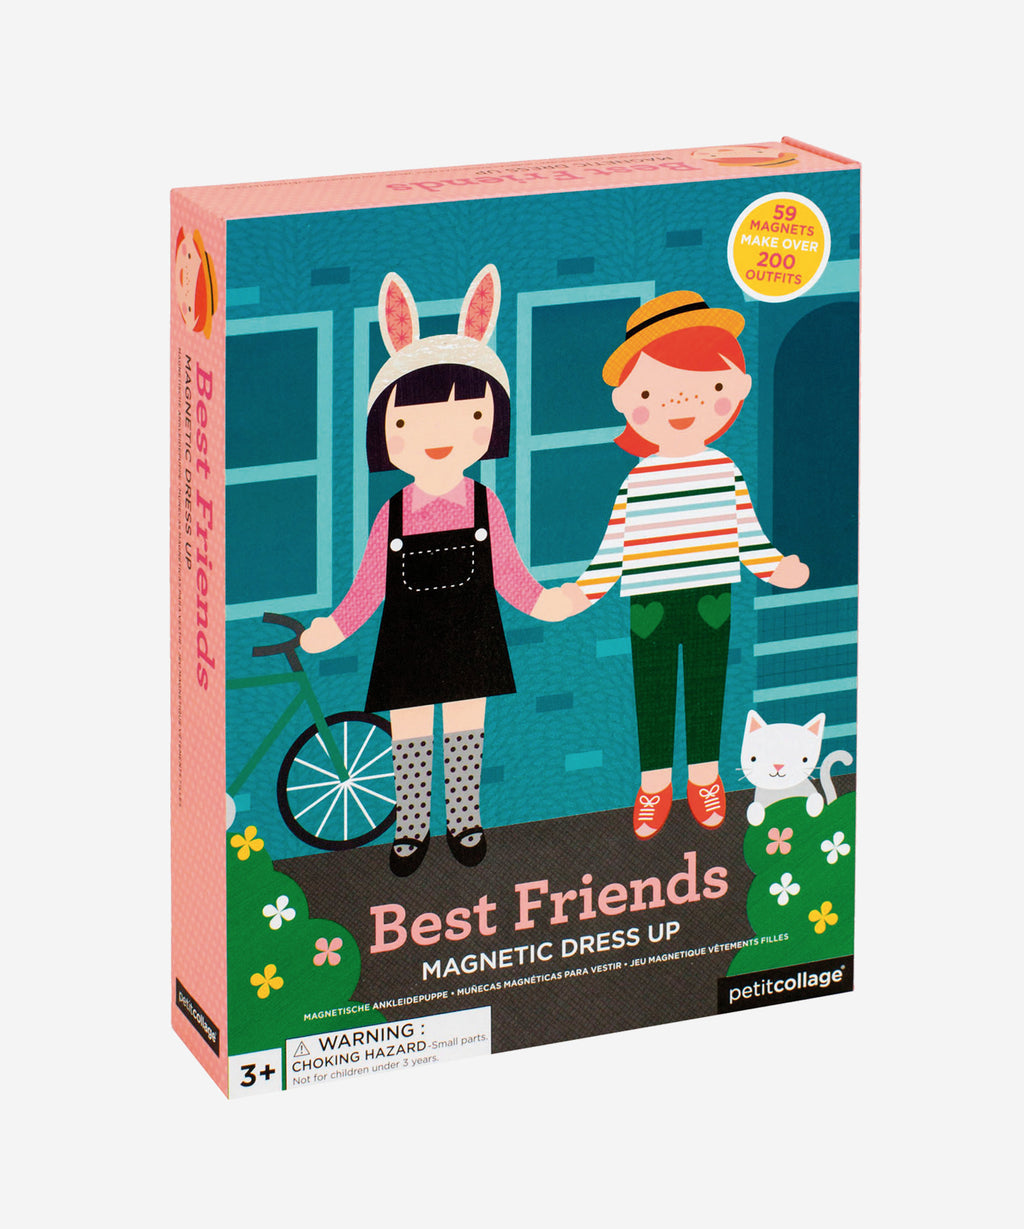 Petitcollage - Magnetic Dress Up - Best Friends